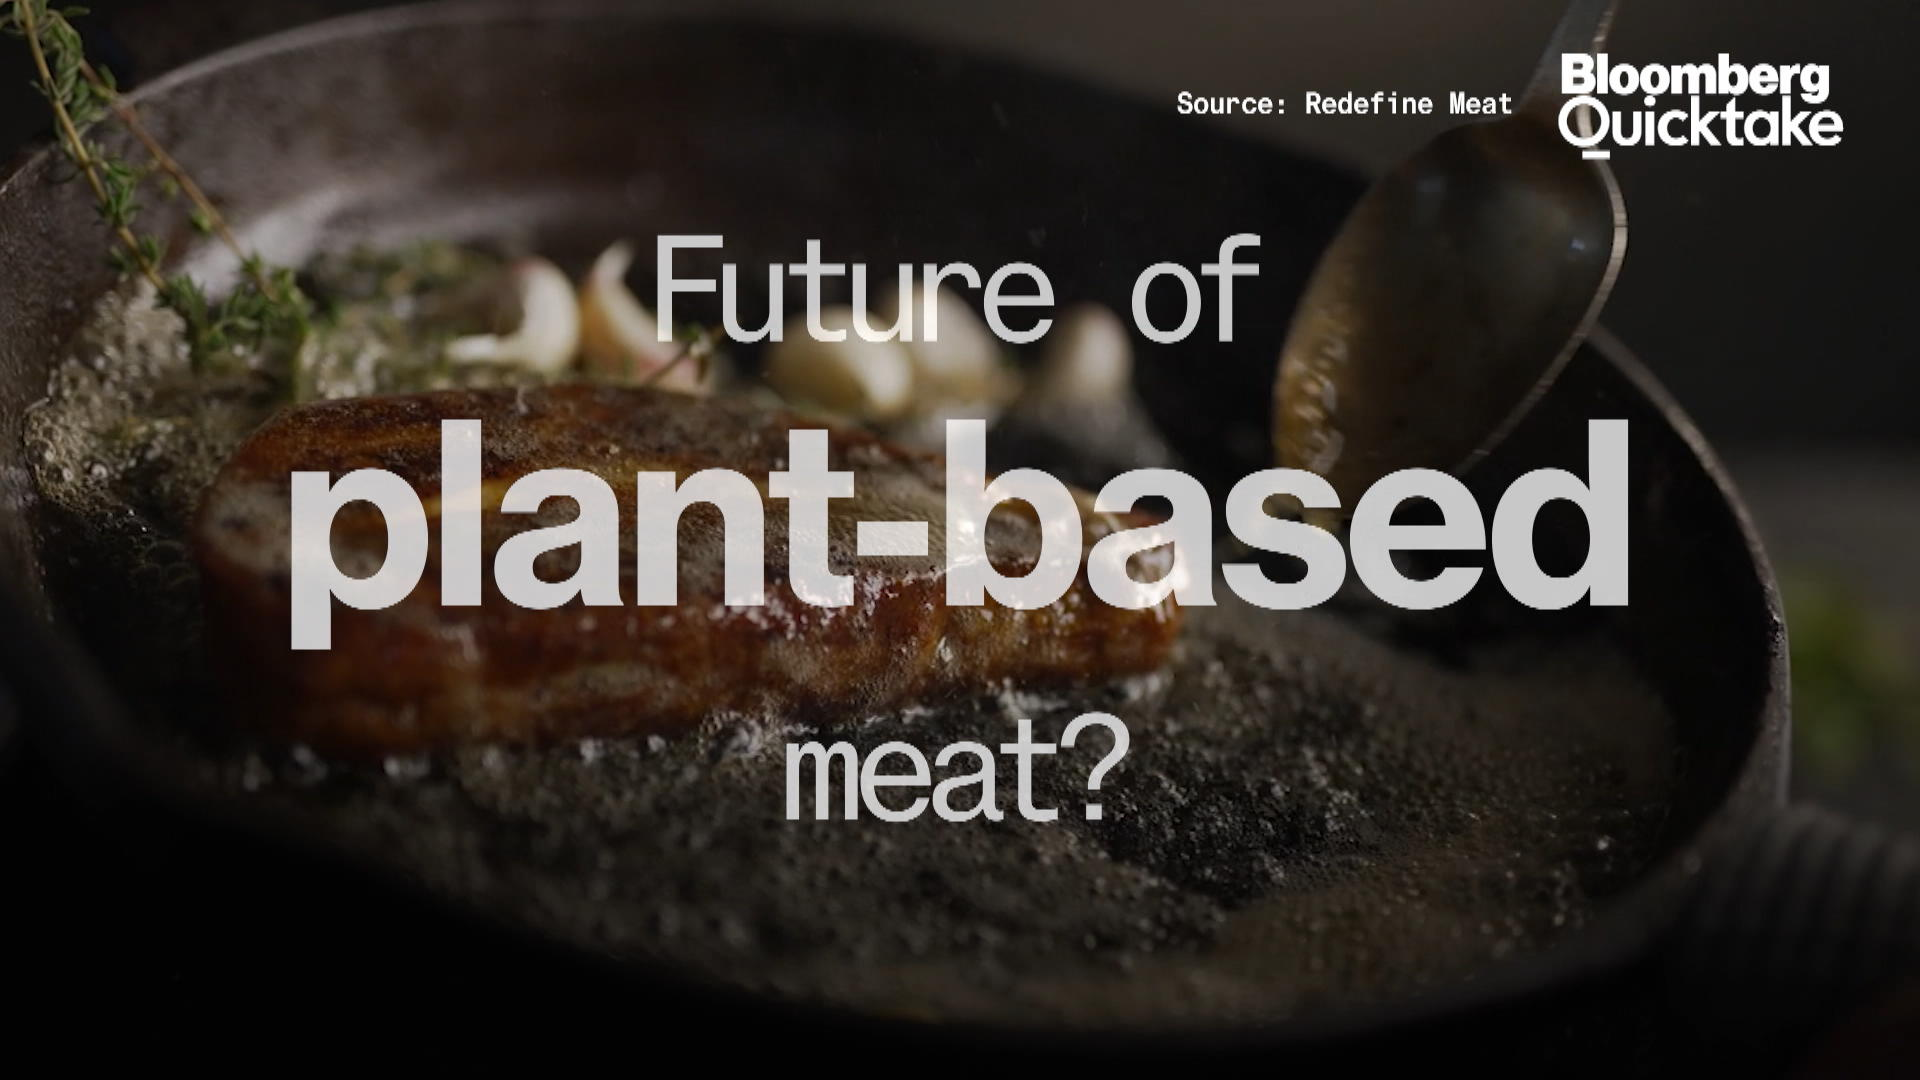 What's the Future of Plant-Based Meat?